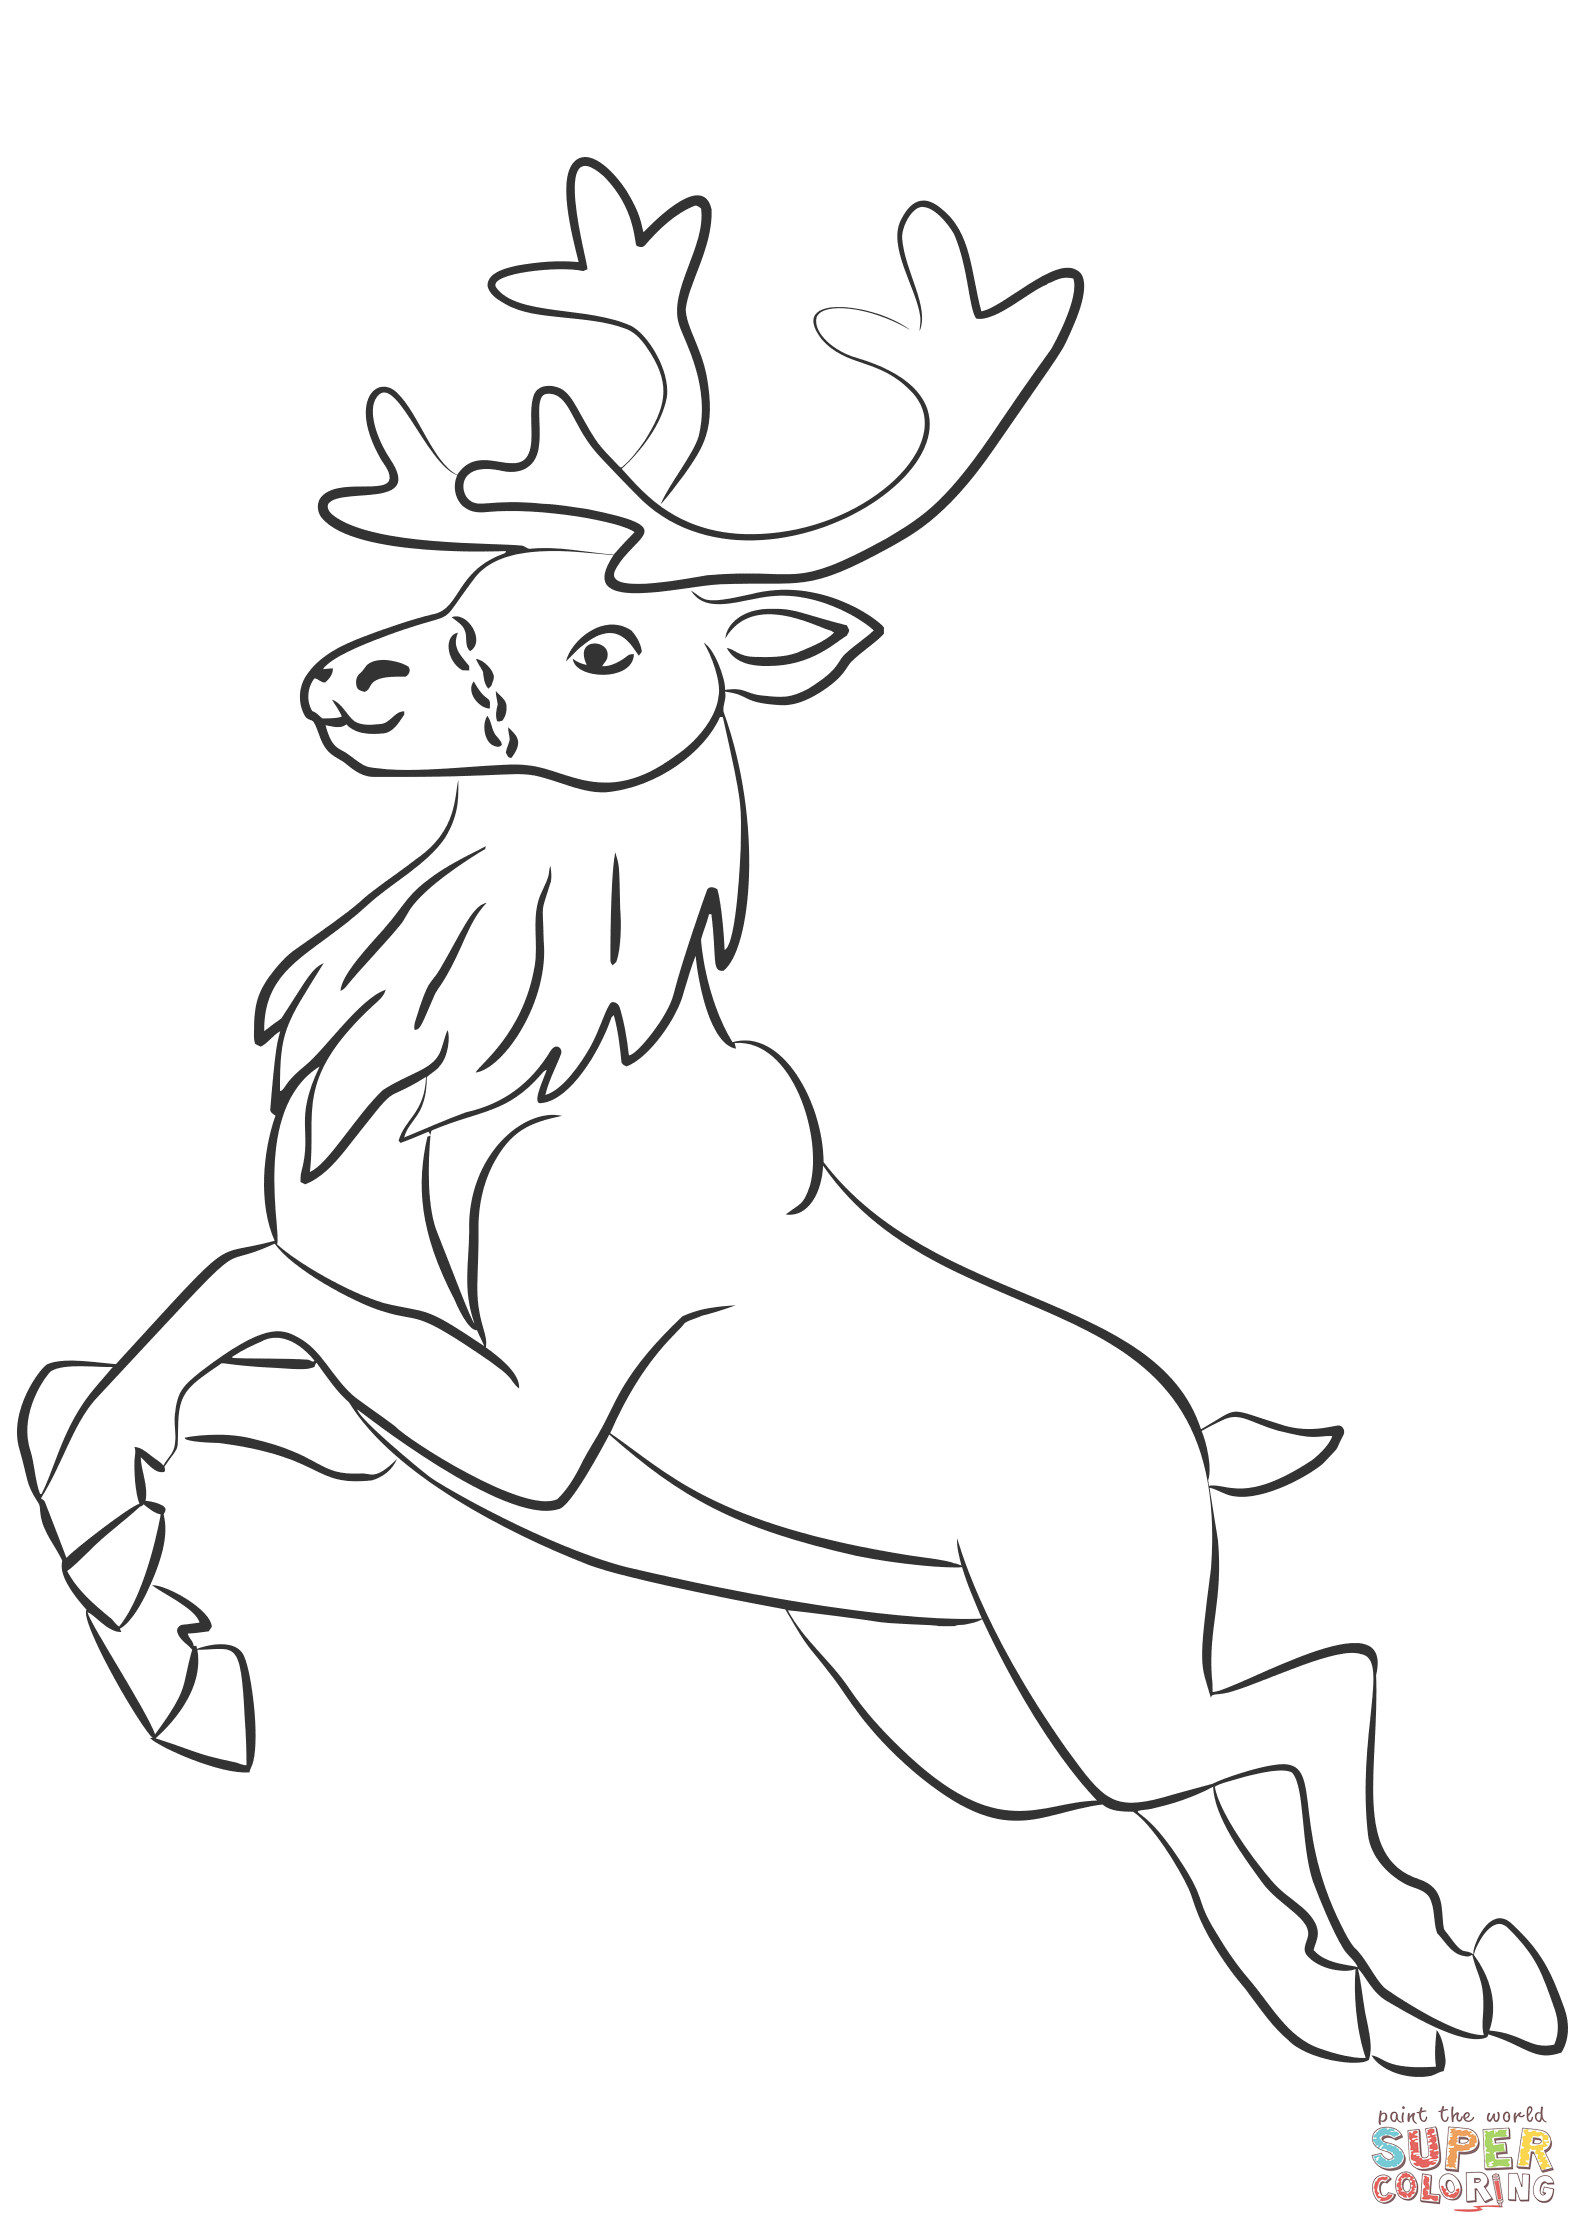 Santa S Reindeer Coloring Pages With Claus Page Free Printable